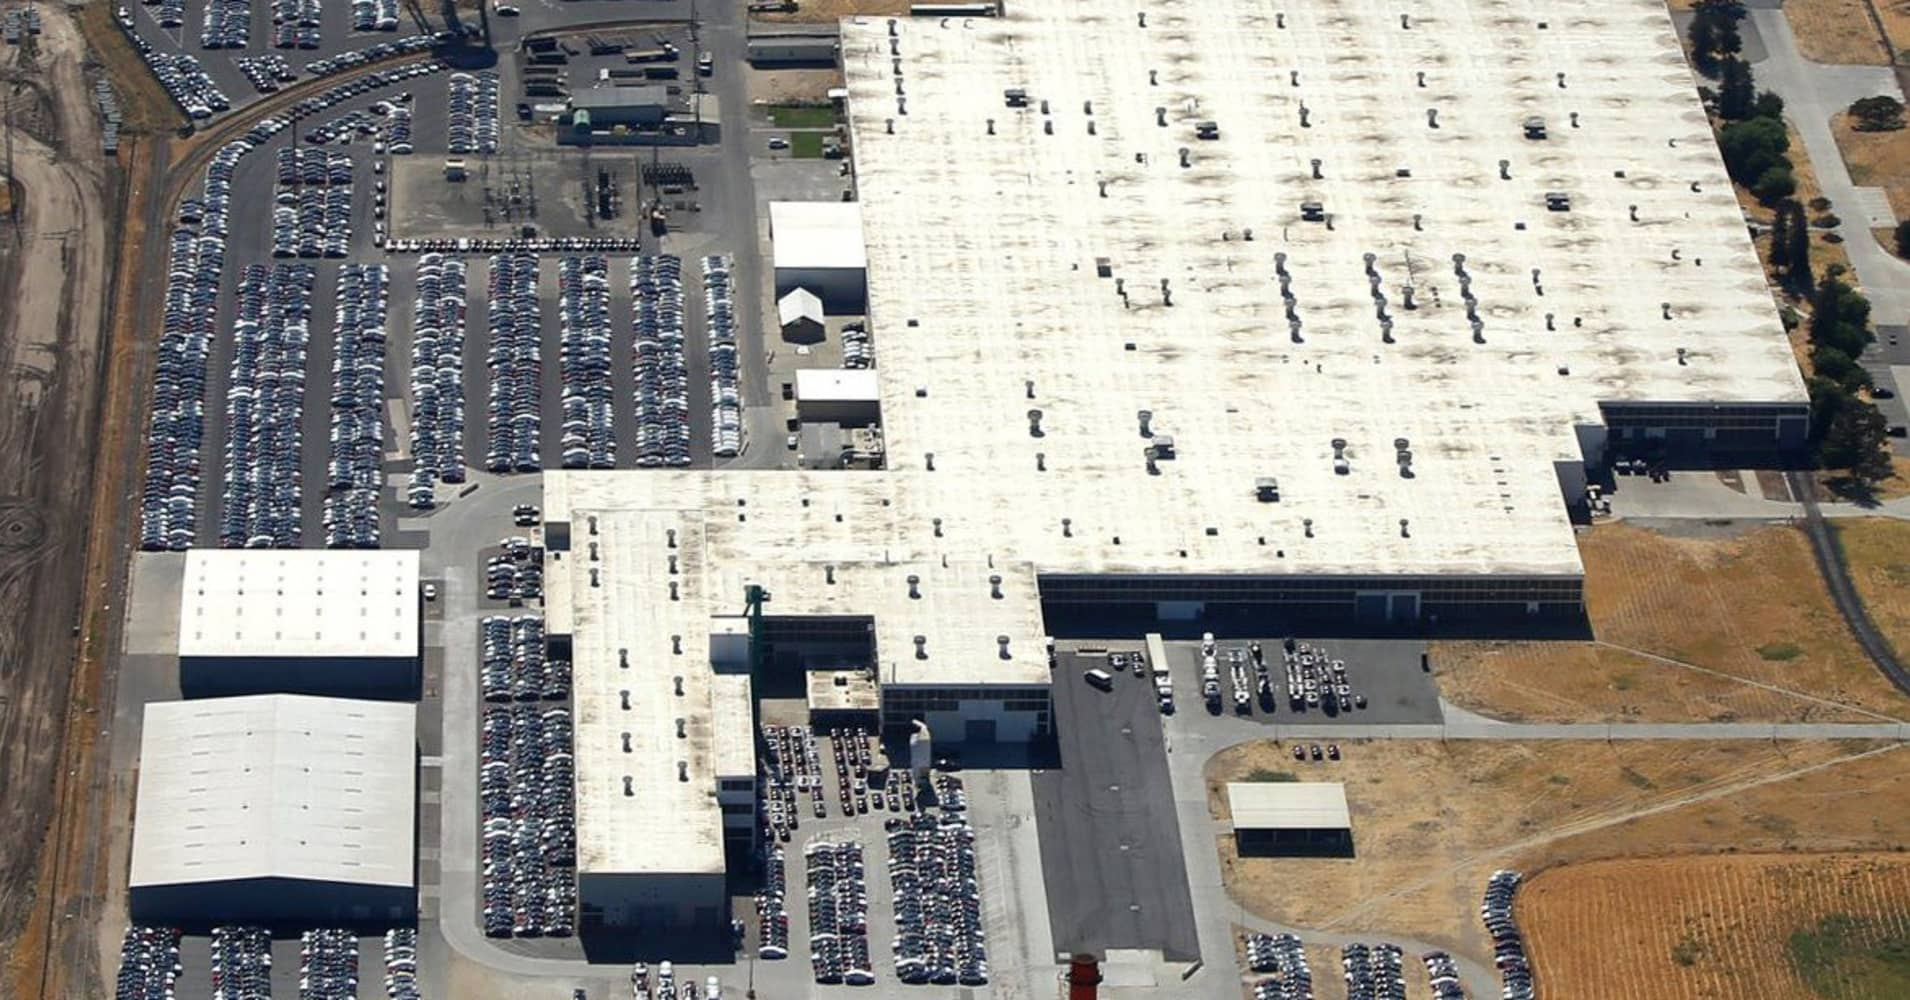 Tesla shorts who take aerial pictures of parking lots launch web site